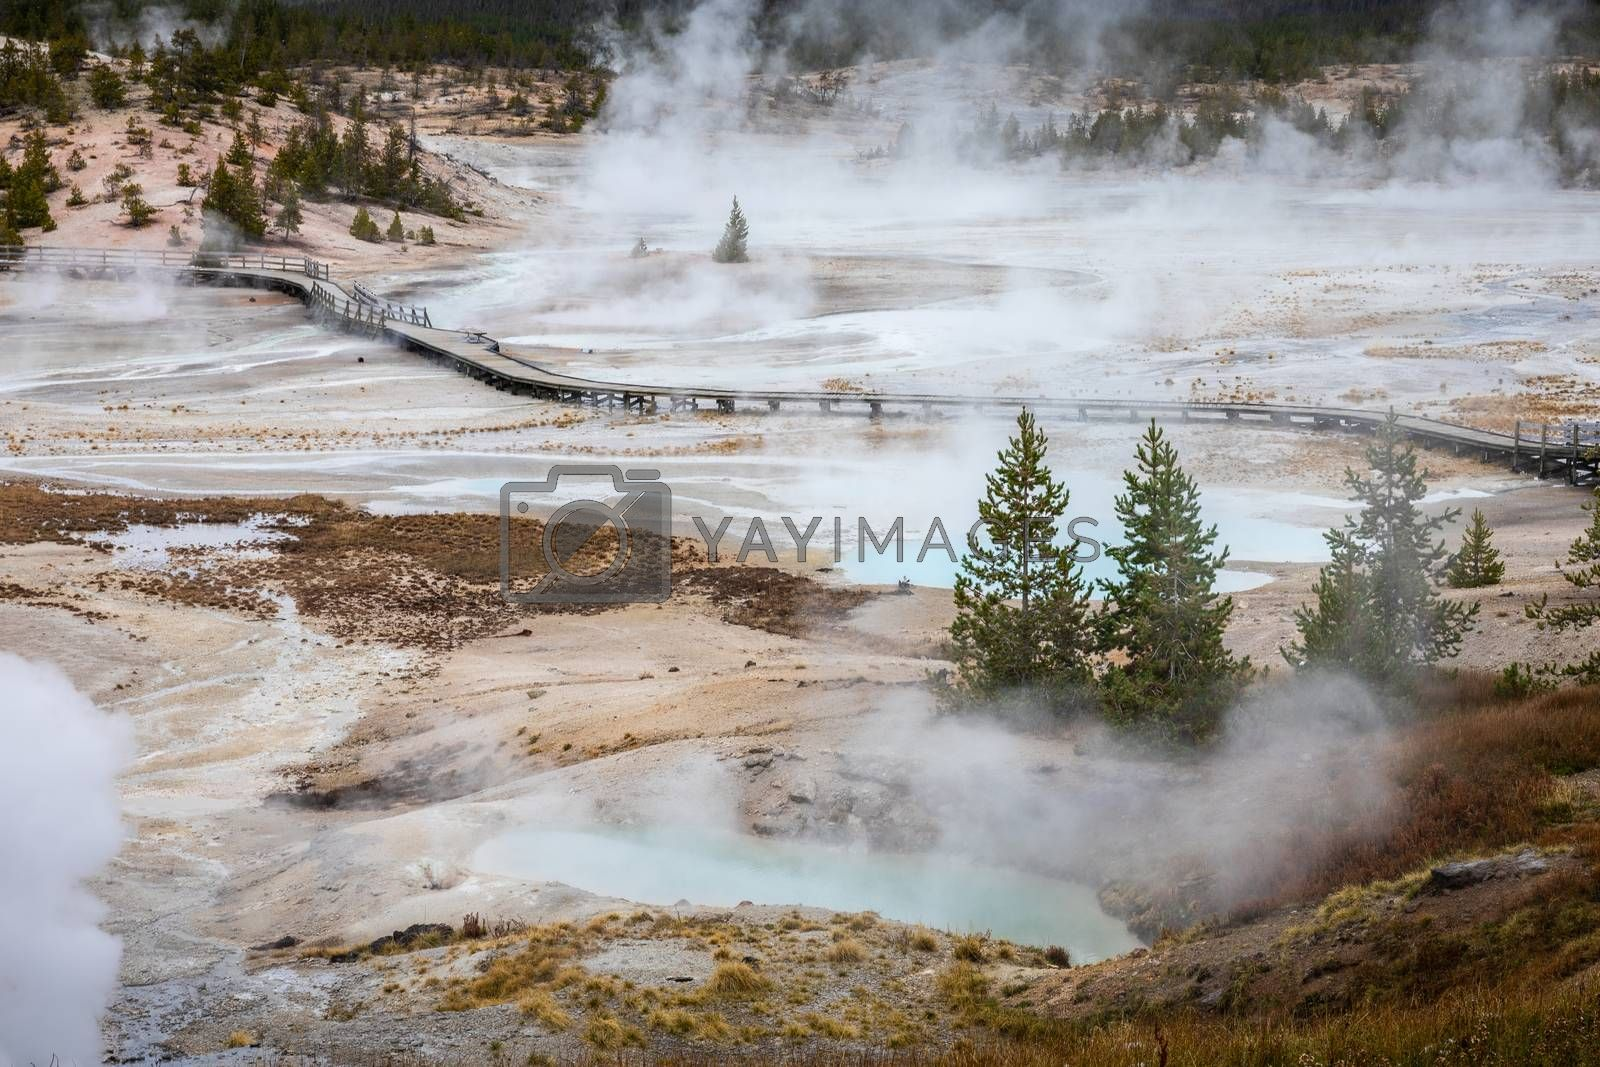 Aerial of hot environment with smoke surrounding by boardwalk for observation the geyser basins of Norris Geyser Basin, Yellowstone National Park, Wyoming, USA.